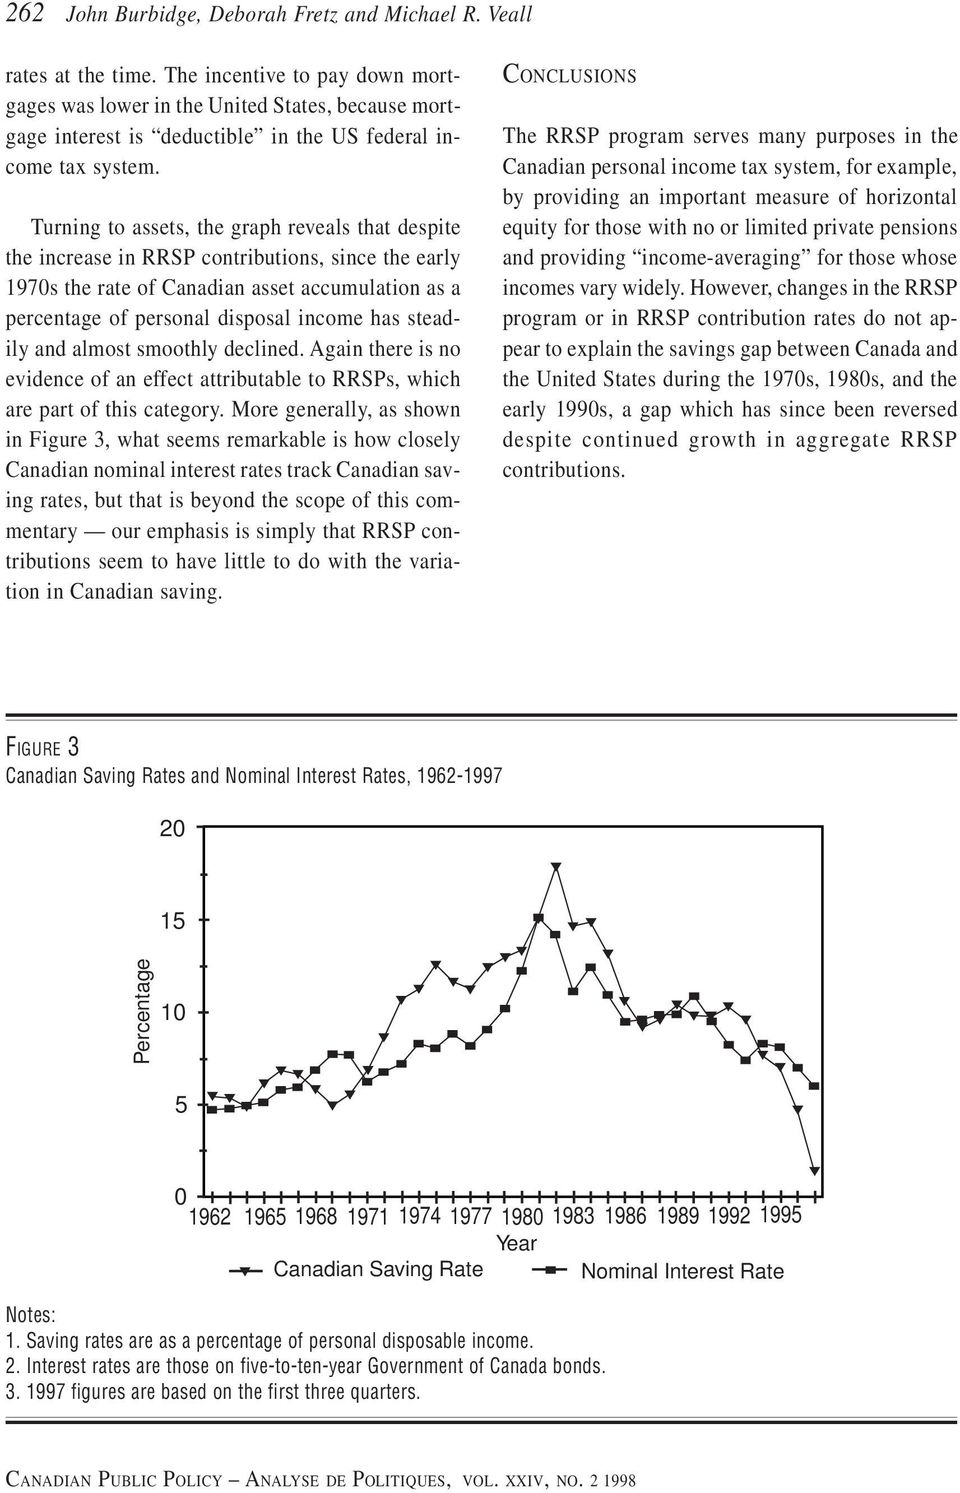 Turning to assets, the graph reveals that despite the increase in RRSP contributions, since the early 197s the rate of Canadian asset accumulation as a percentage of personal disposal income has